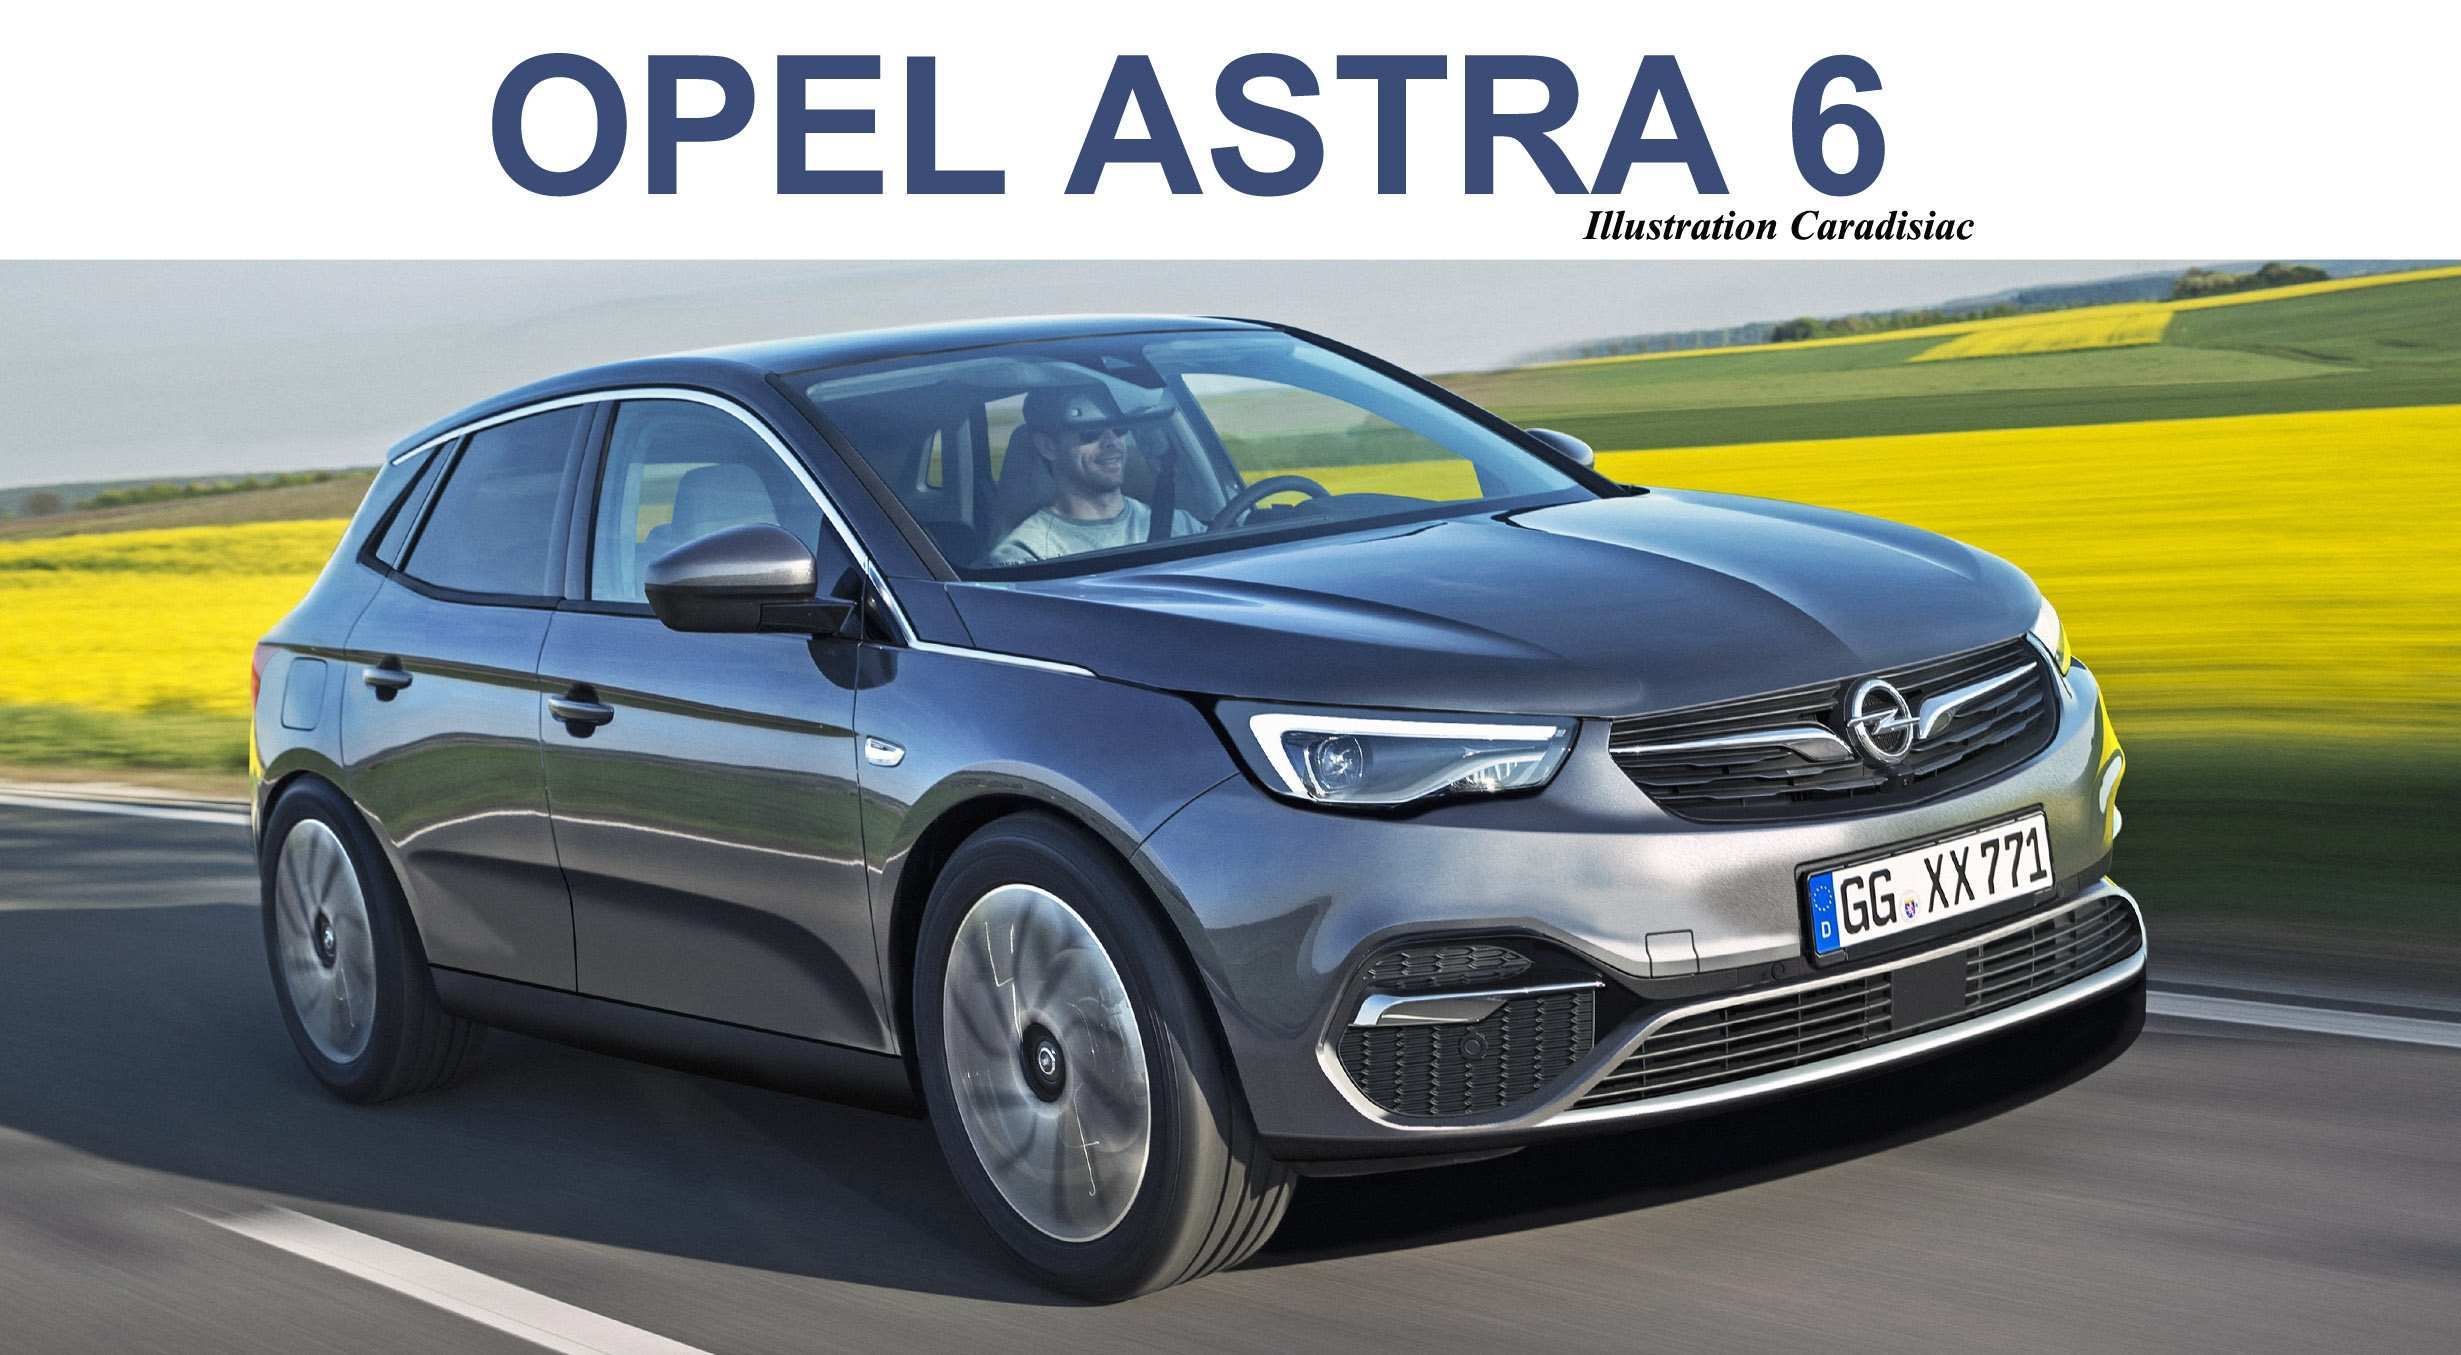 89 Best Review Opel Astra K 2020 Redesign and Concept with Opel Astra K 2020